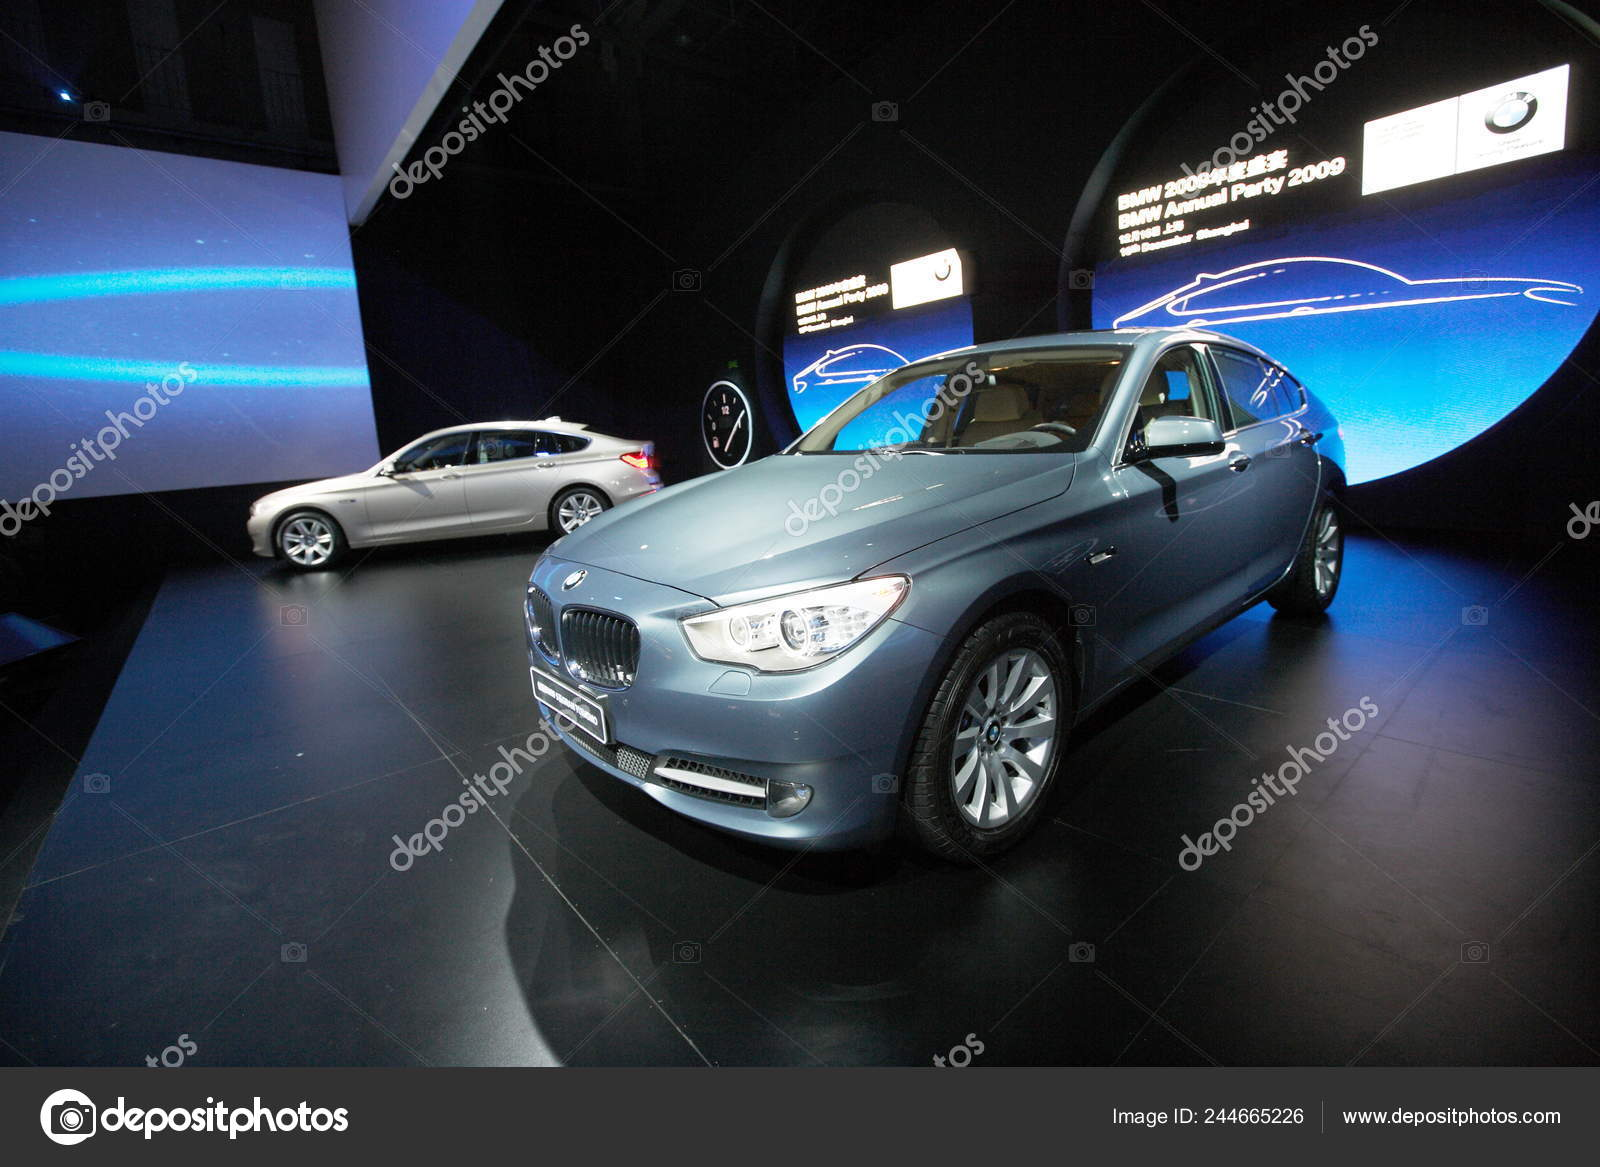 Two Bmw Series Gran Turismo Cars Displayed Launch Ceremony Shanghai Stock Editorial Photo C Chinaimages 244665226